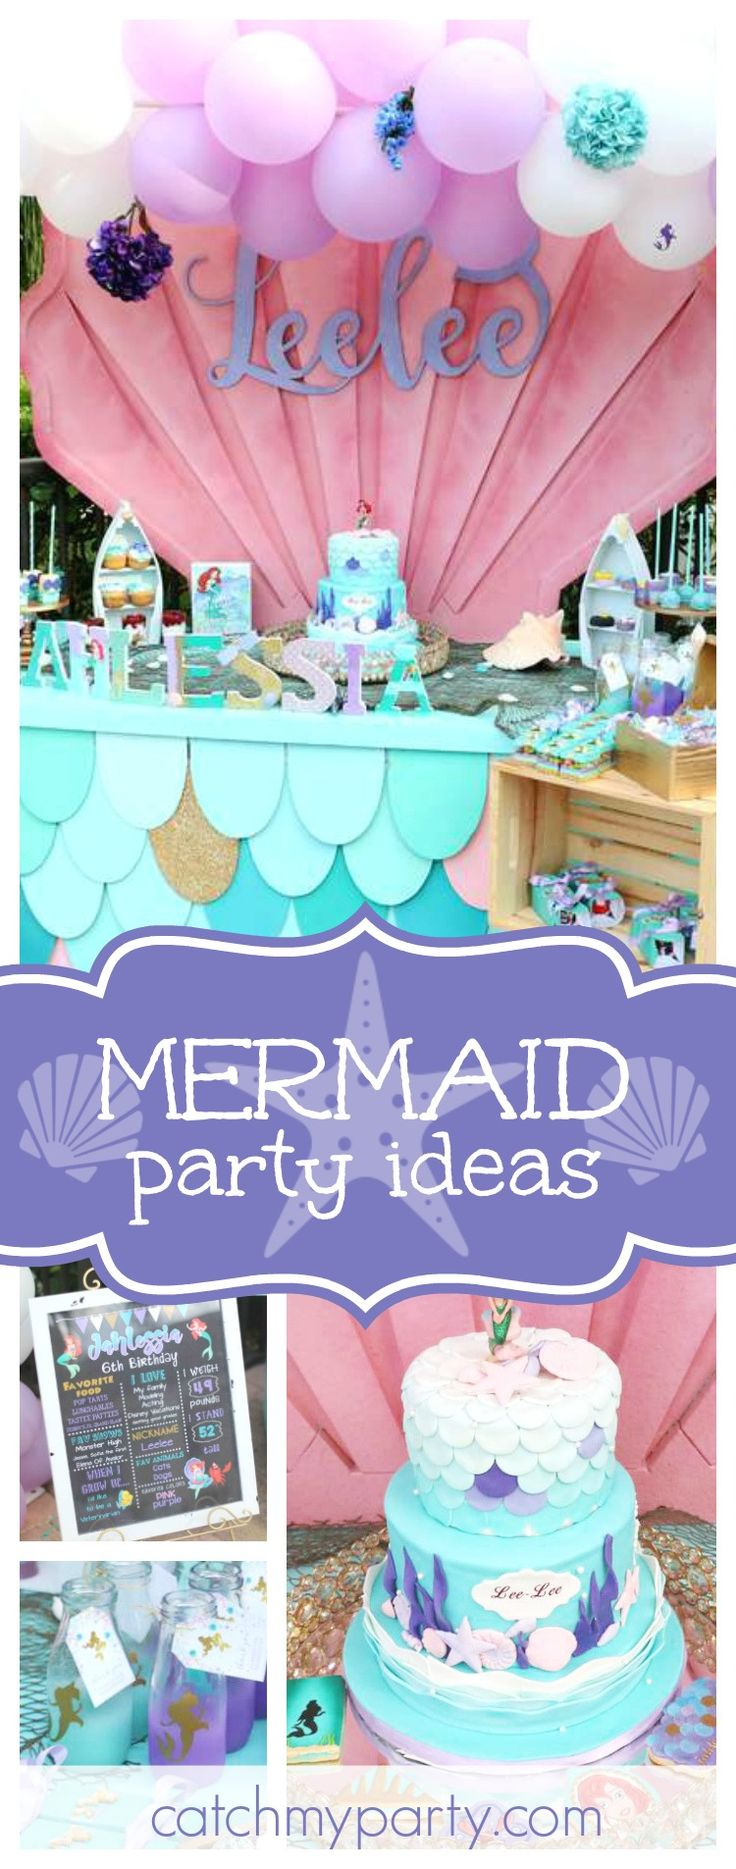 Dive into this wonderful Mermaid Splash Birthday Bash! The dessert table is gorgeous!! See more party ideas and share yours at CatchMyParty.com